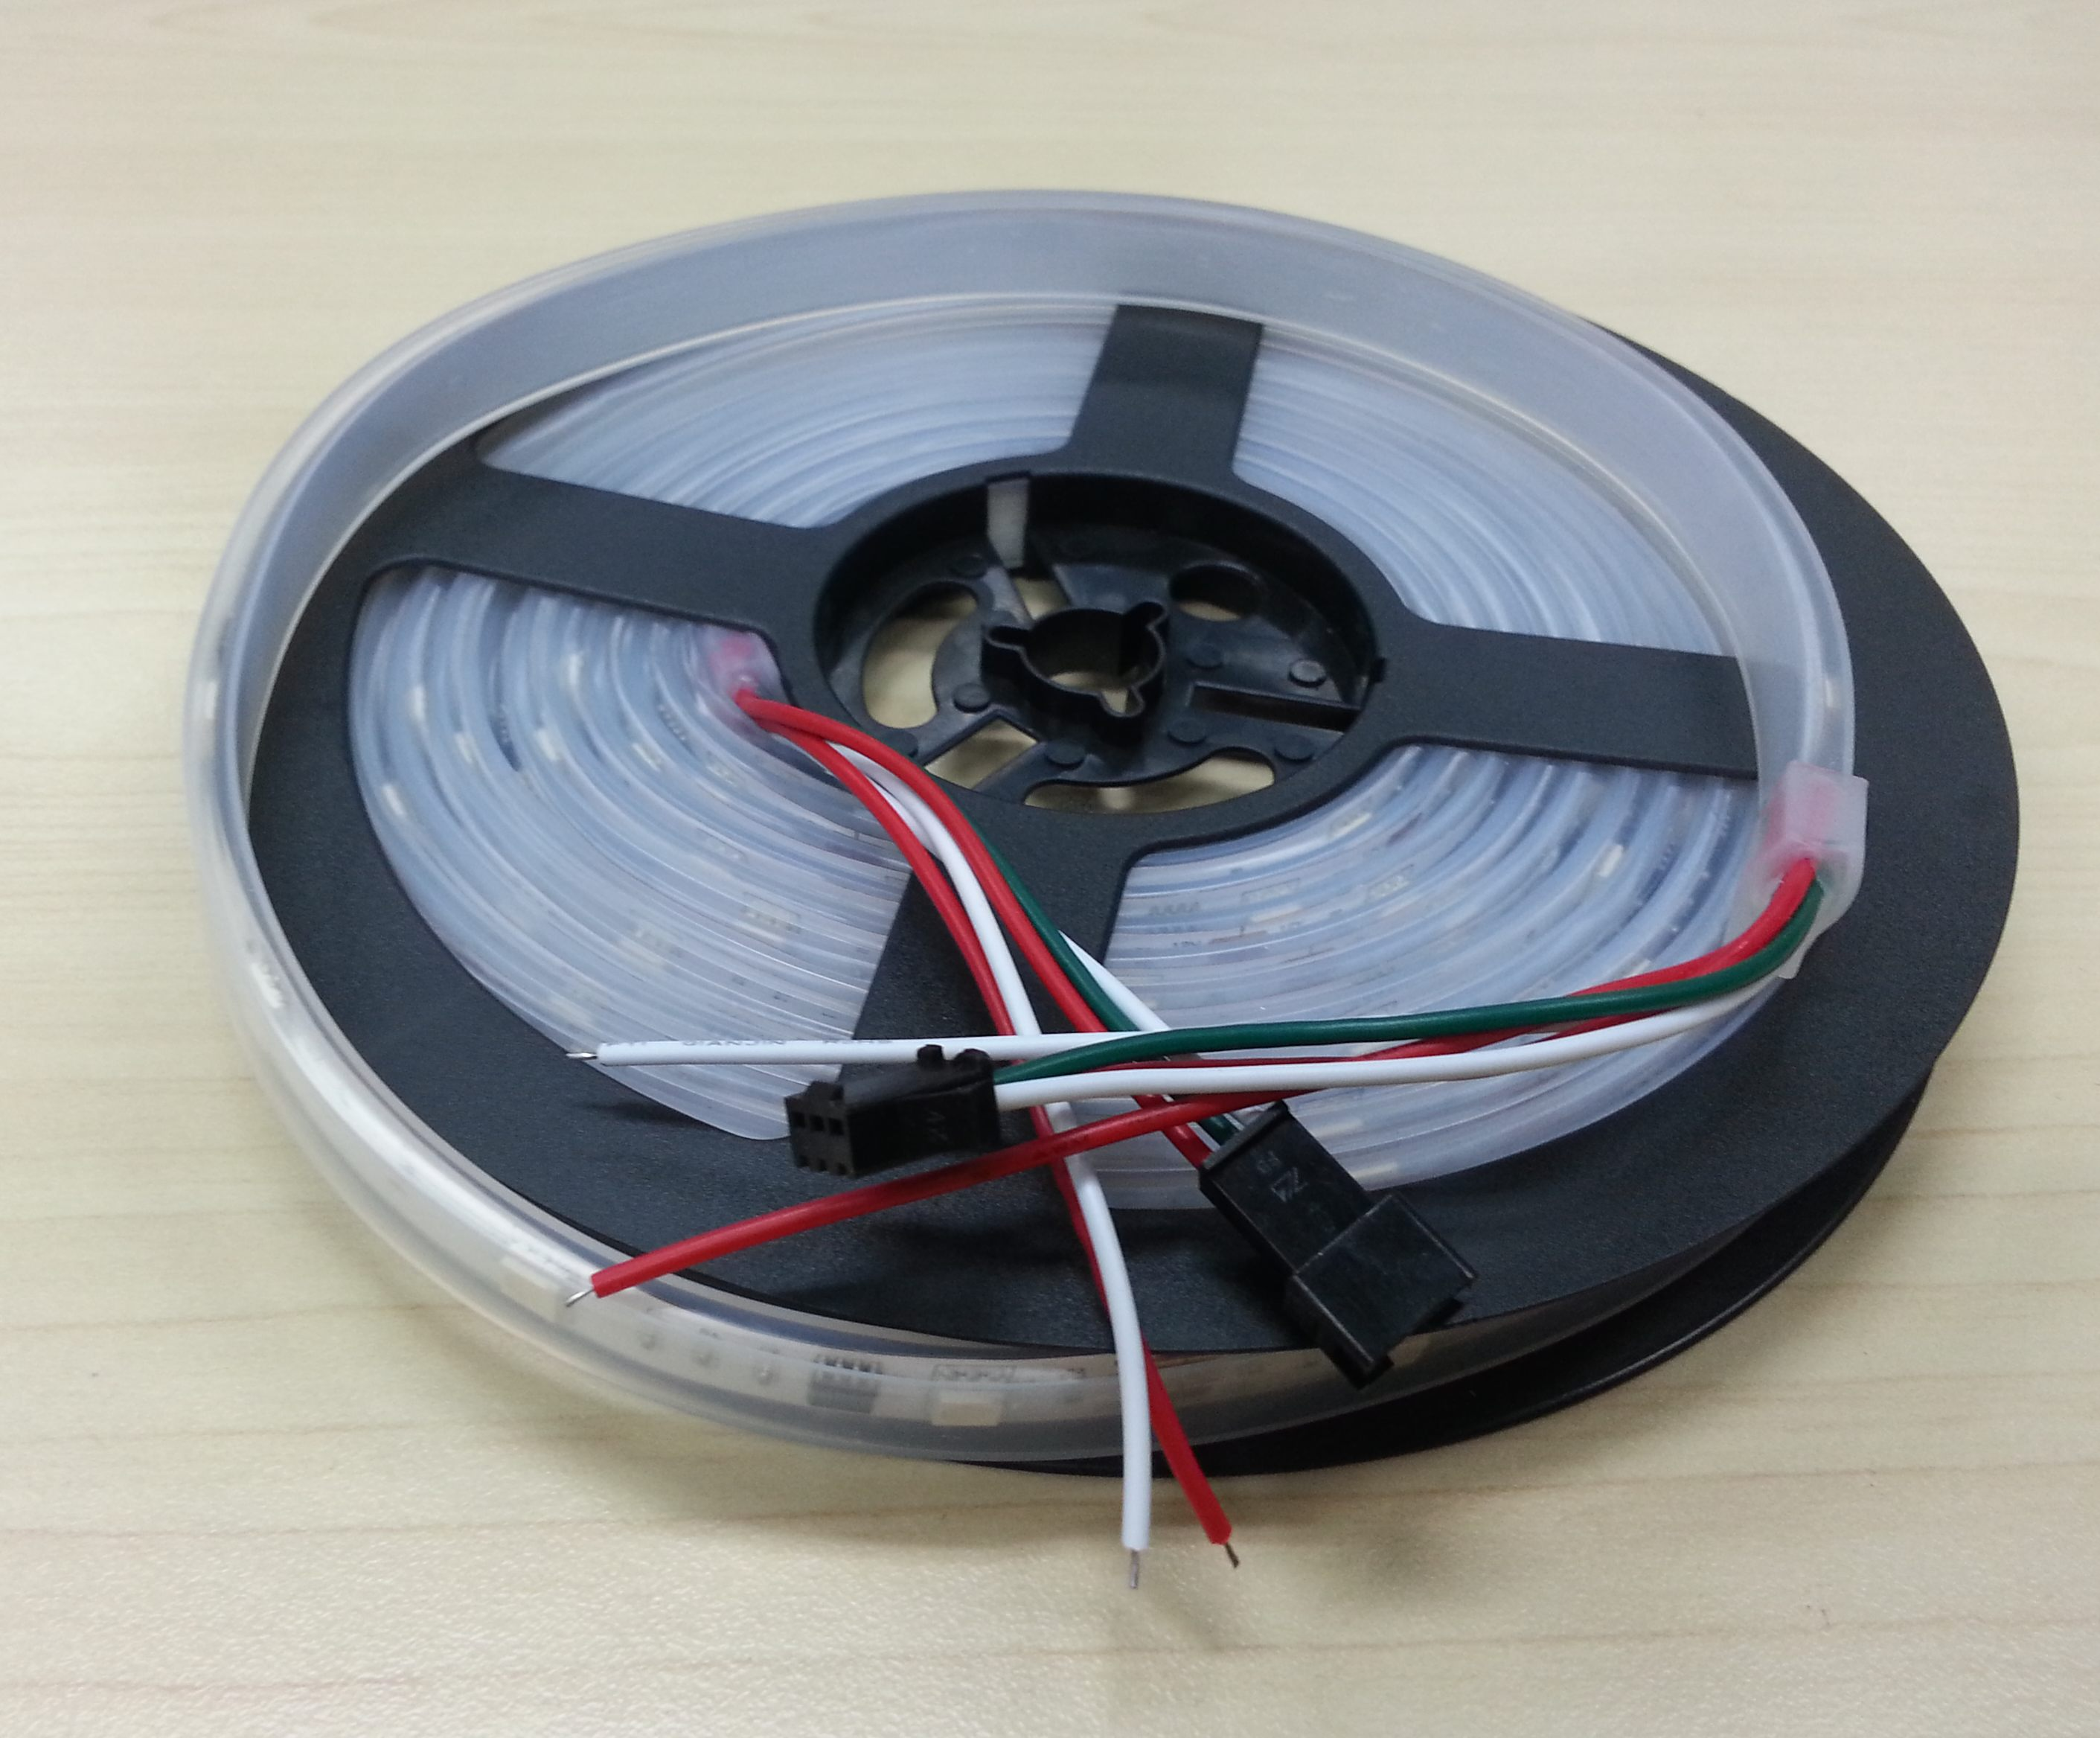 dc12v_WS2811_addressable_rgb_led_strip_5m_150LEDs_2811_Lights